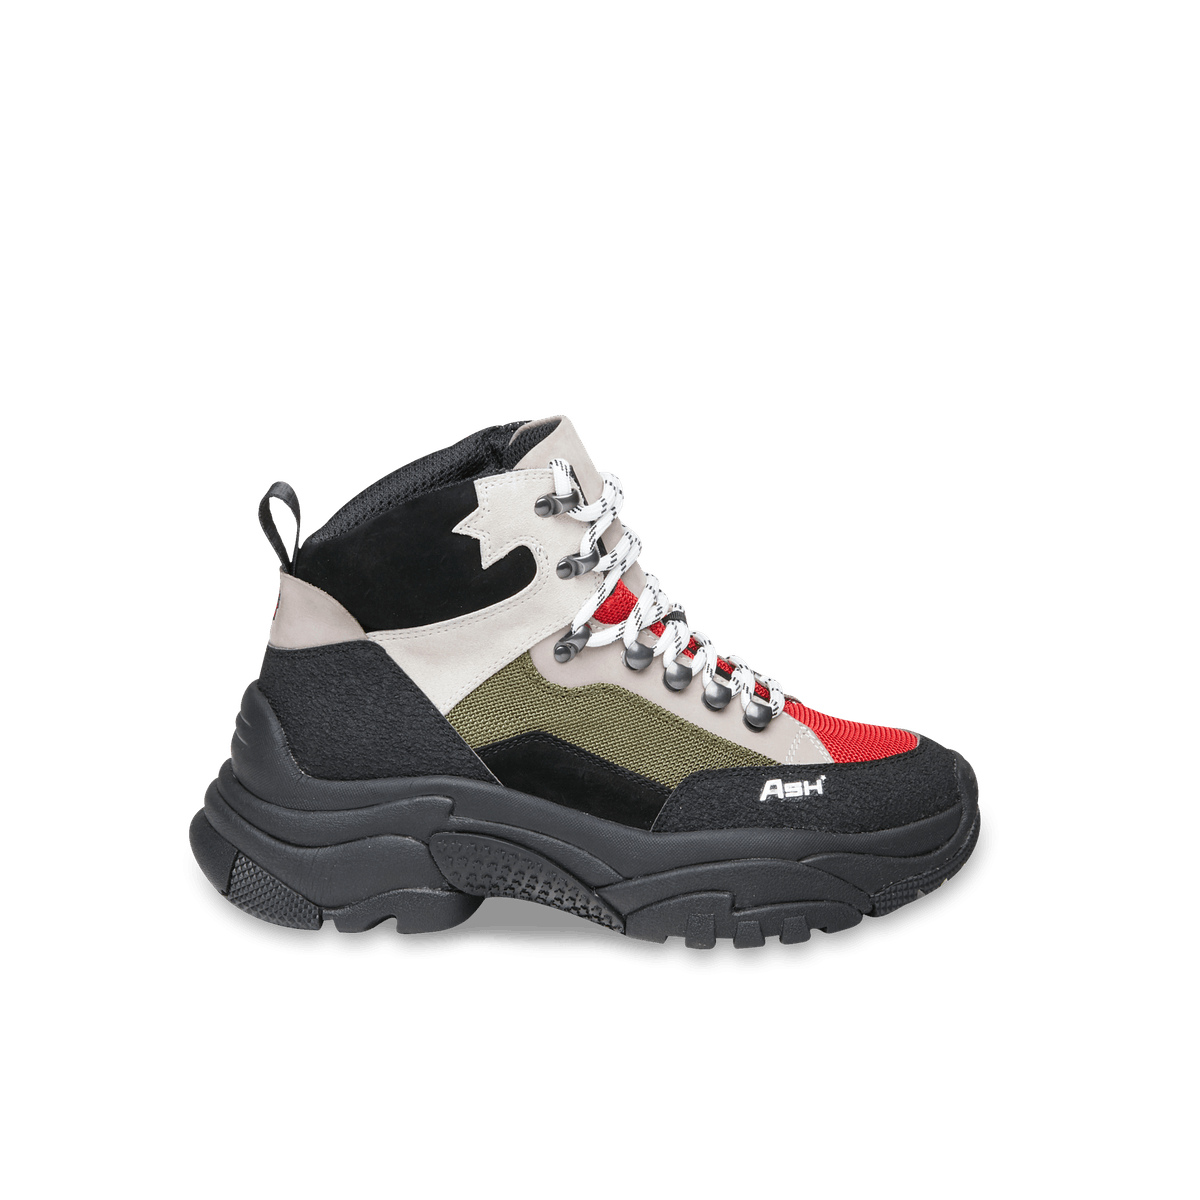 13 Stylish Hiking Boots To Buy Before The Snow Falls